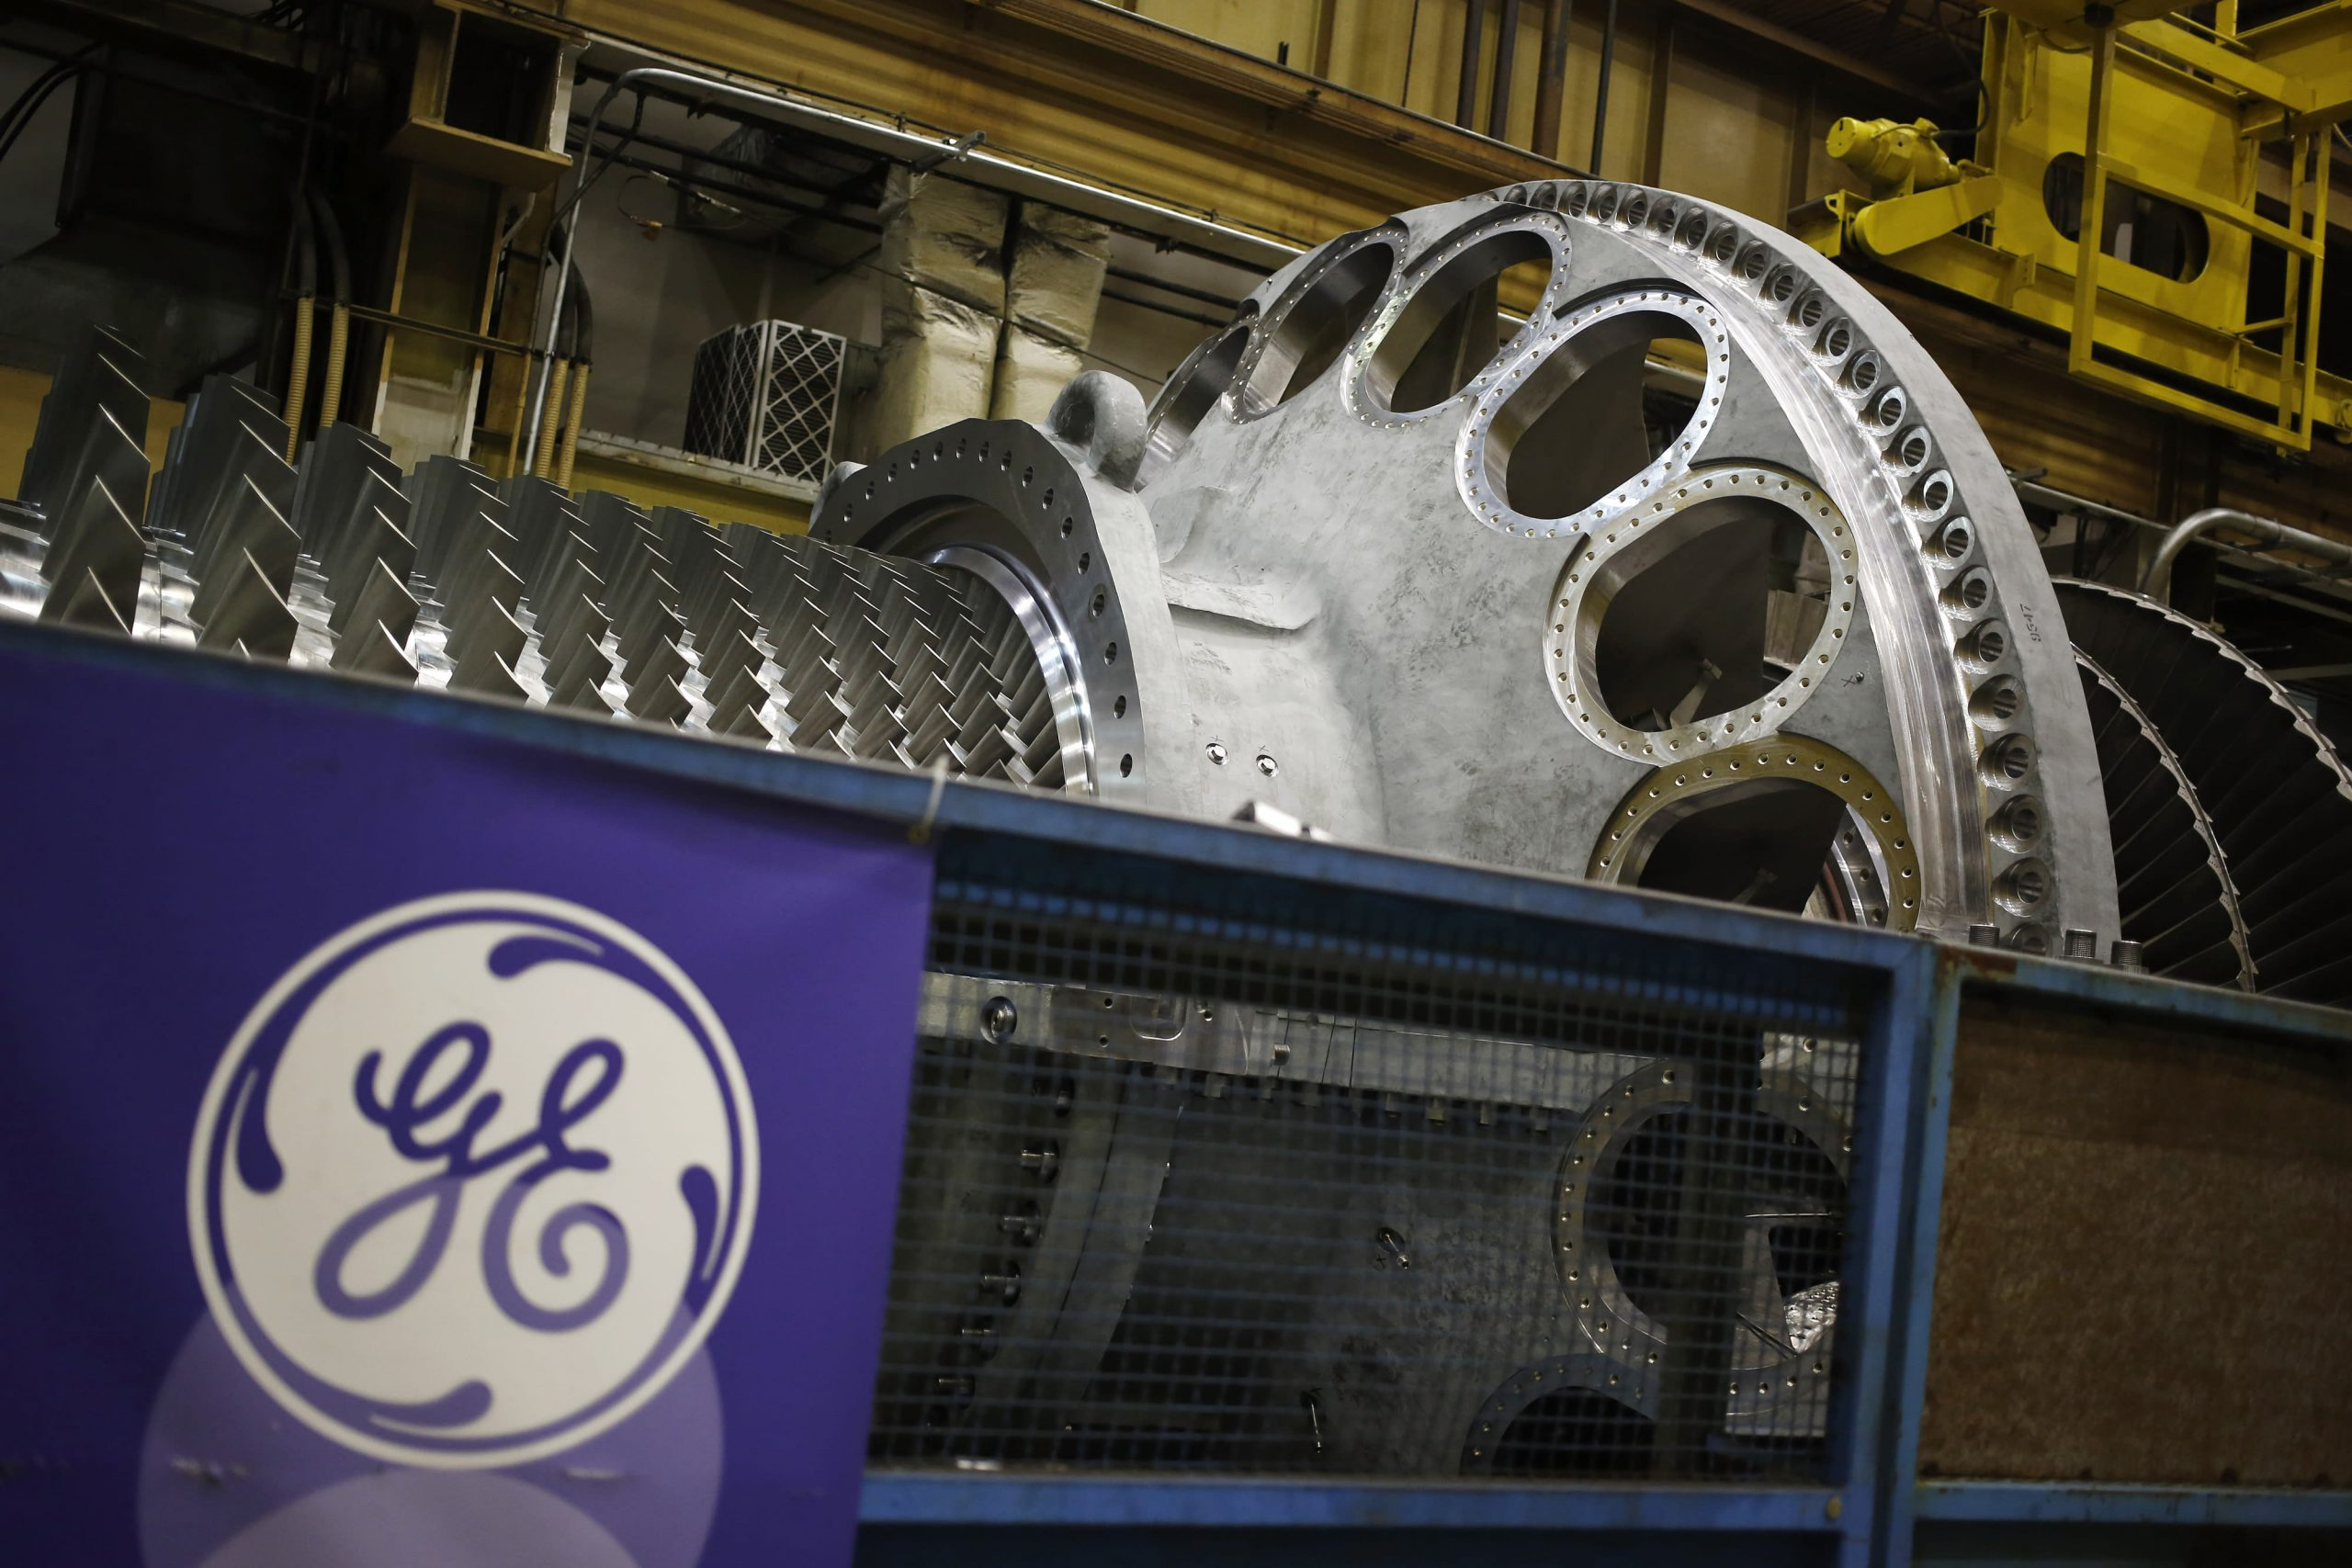 Trump administration may stop exporting engines co-manufactured by GE to China, WSJ says